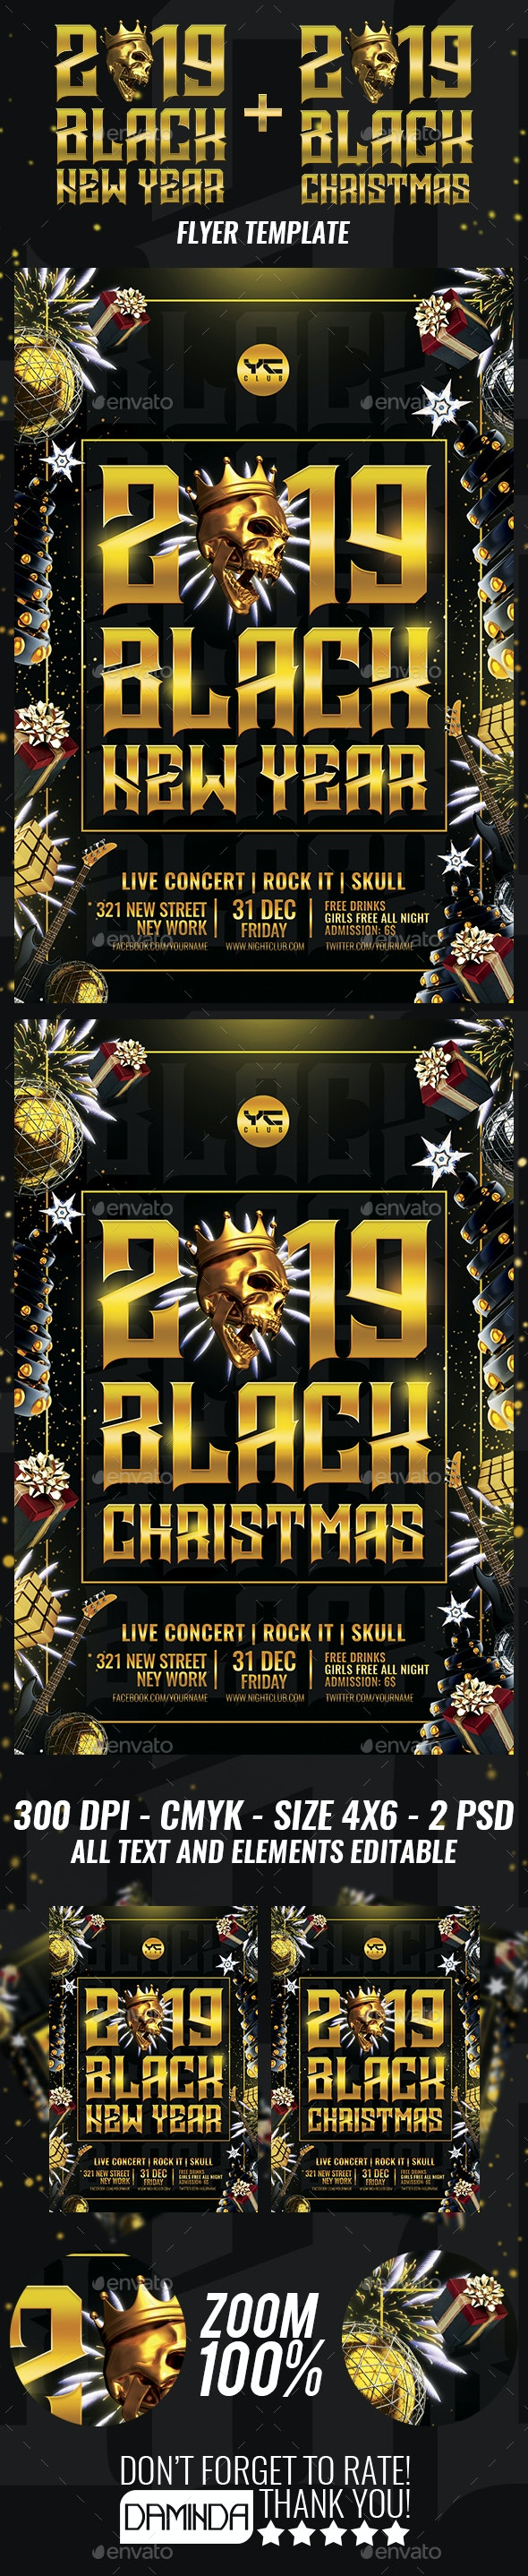 Black New Year and Christmas 2019 Flyer Template - Clubs & Parties Events